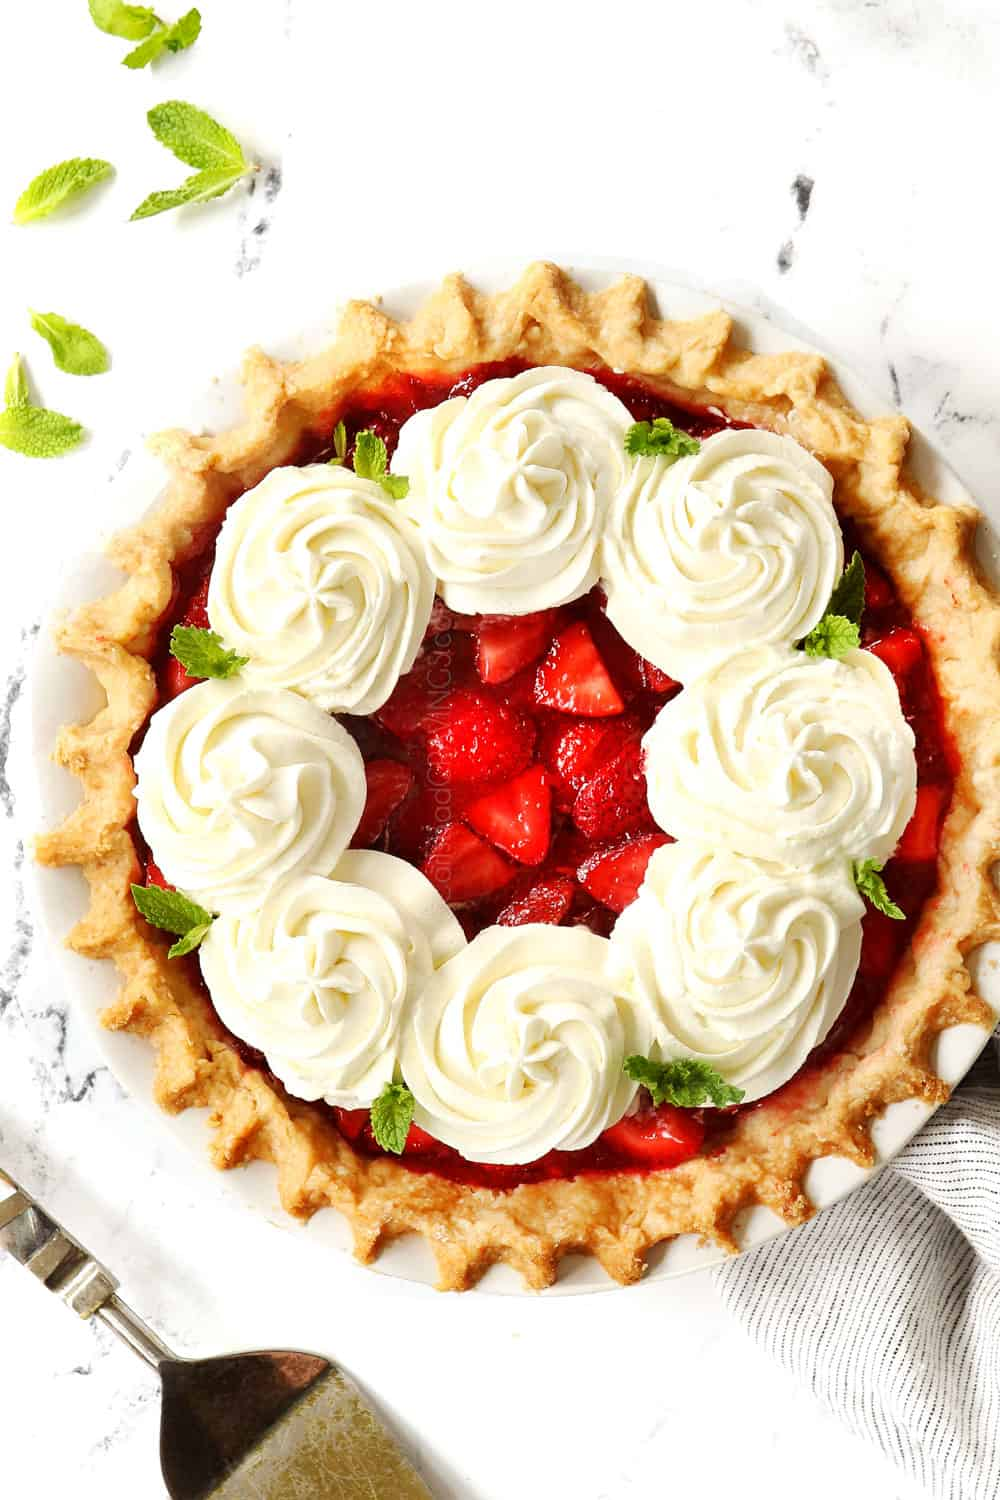 top view of fresh strawberry pie garnished with dollops of whipped cream